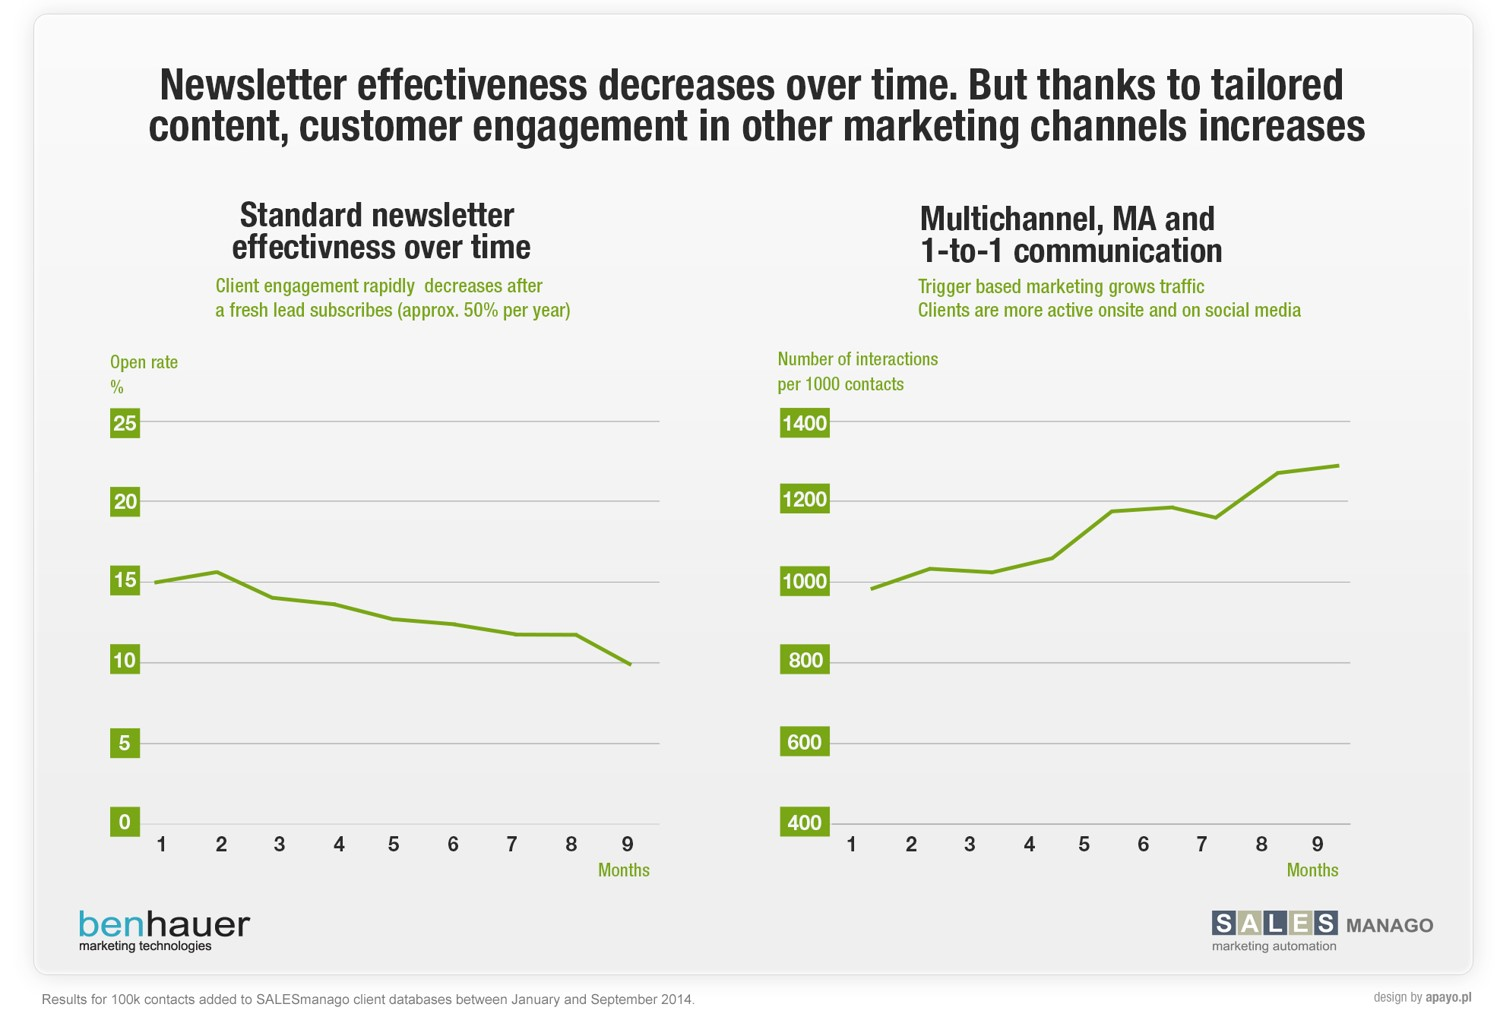 Newsletter effectiveness decreases overtime